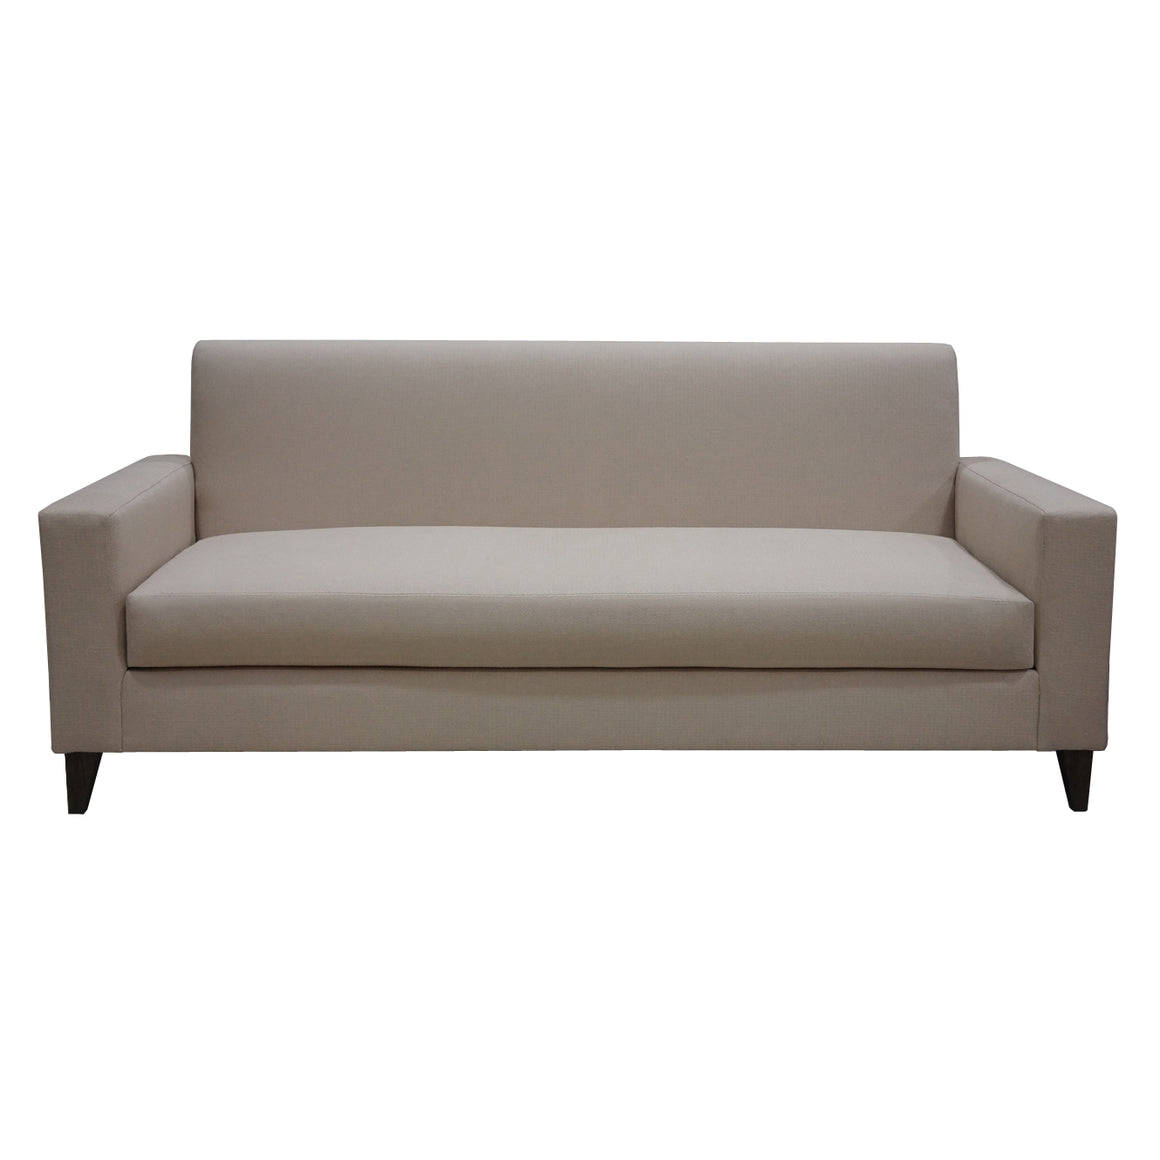 Tom Eco Friendly Sofa   No Chemical Flame Retardants   Made In The USA    Pure Upholstery